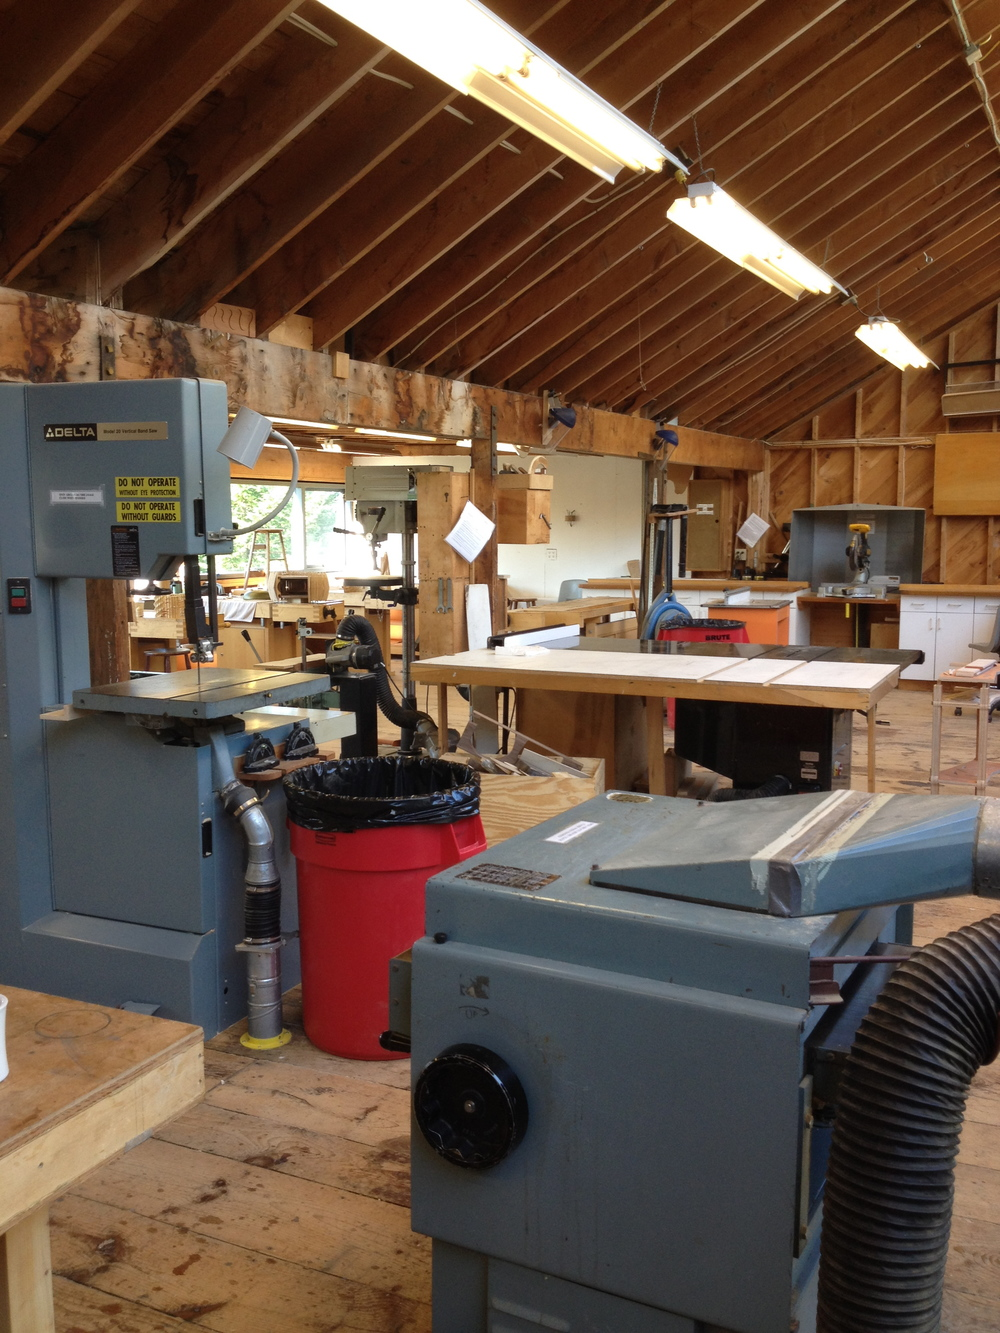 The woodworking studio at Haystack Mountain School of Crafts